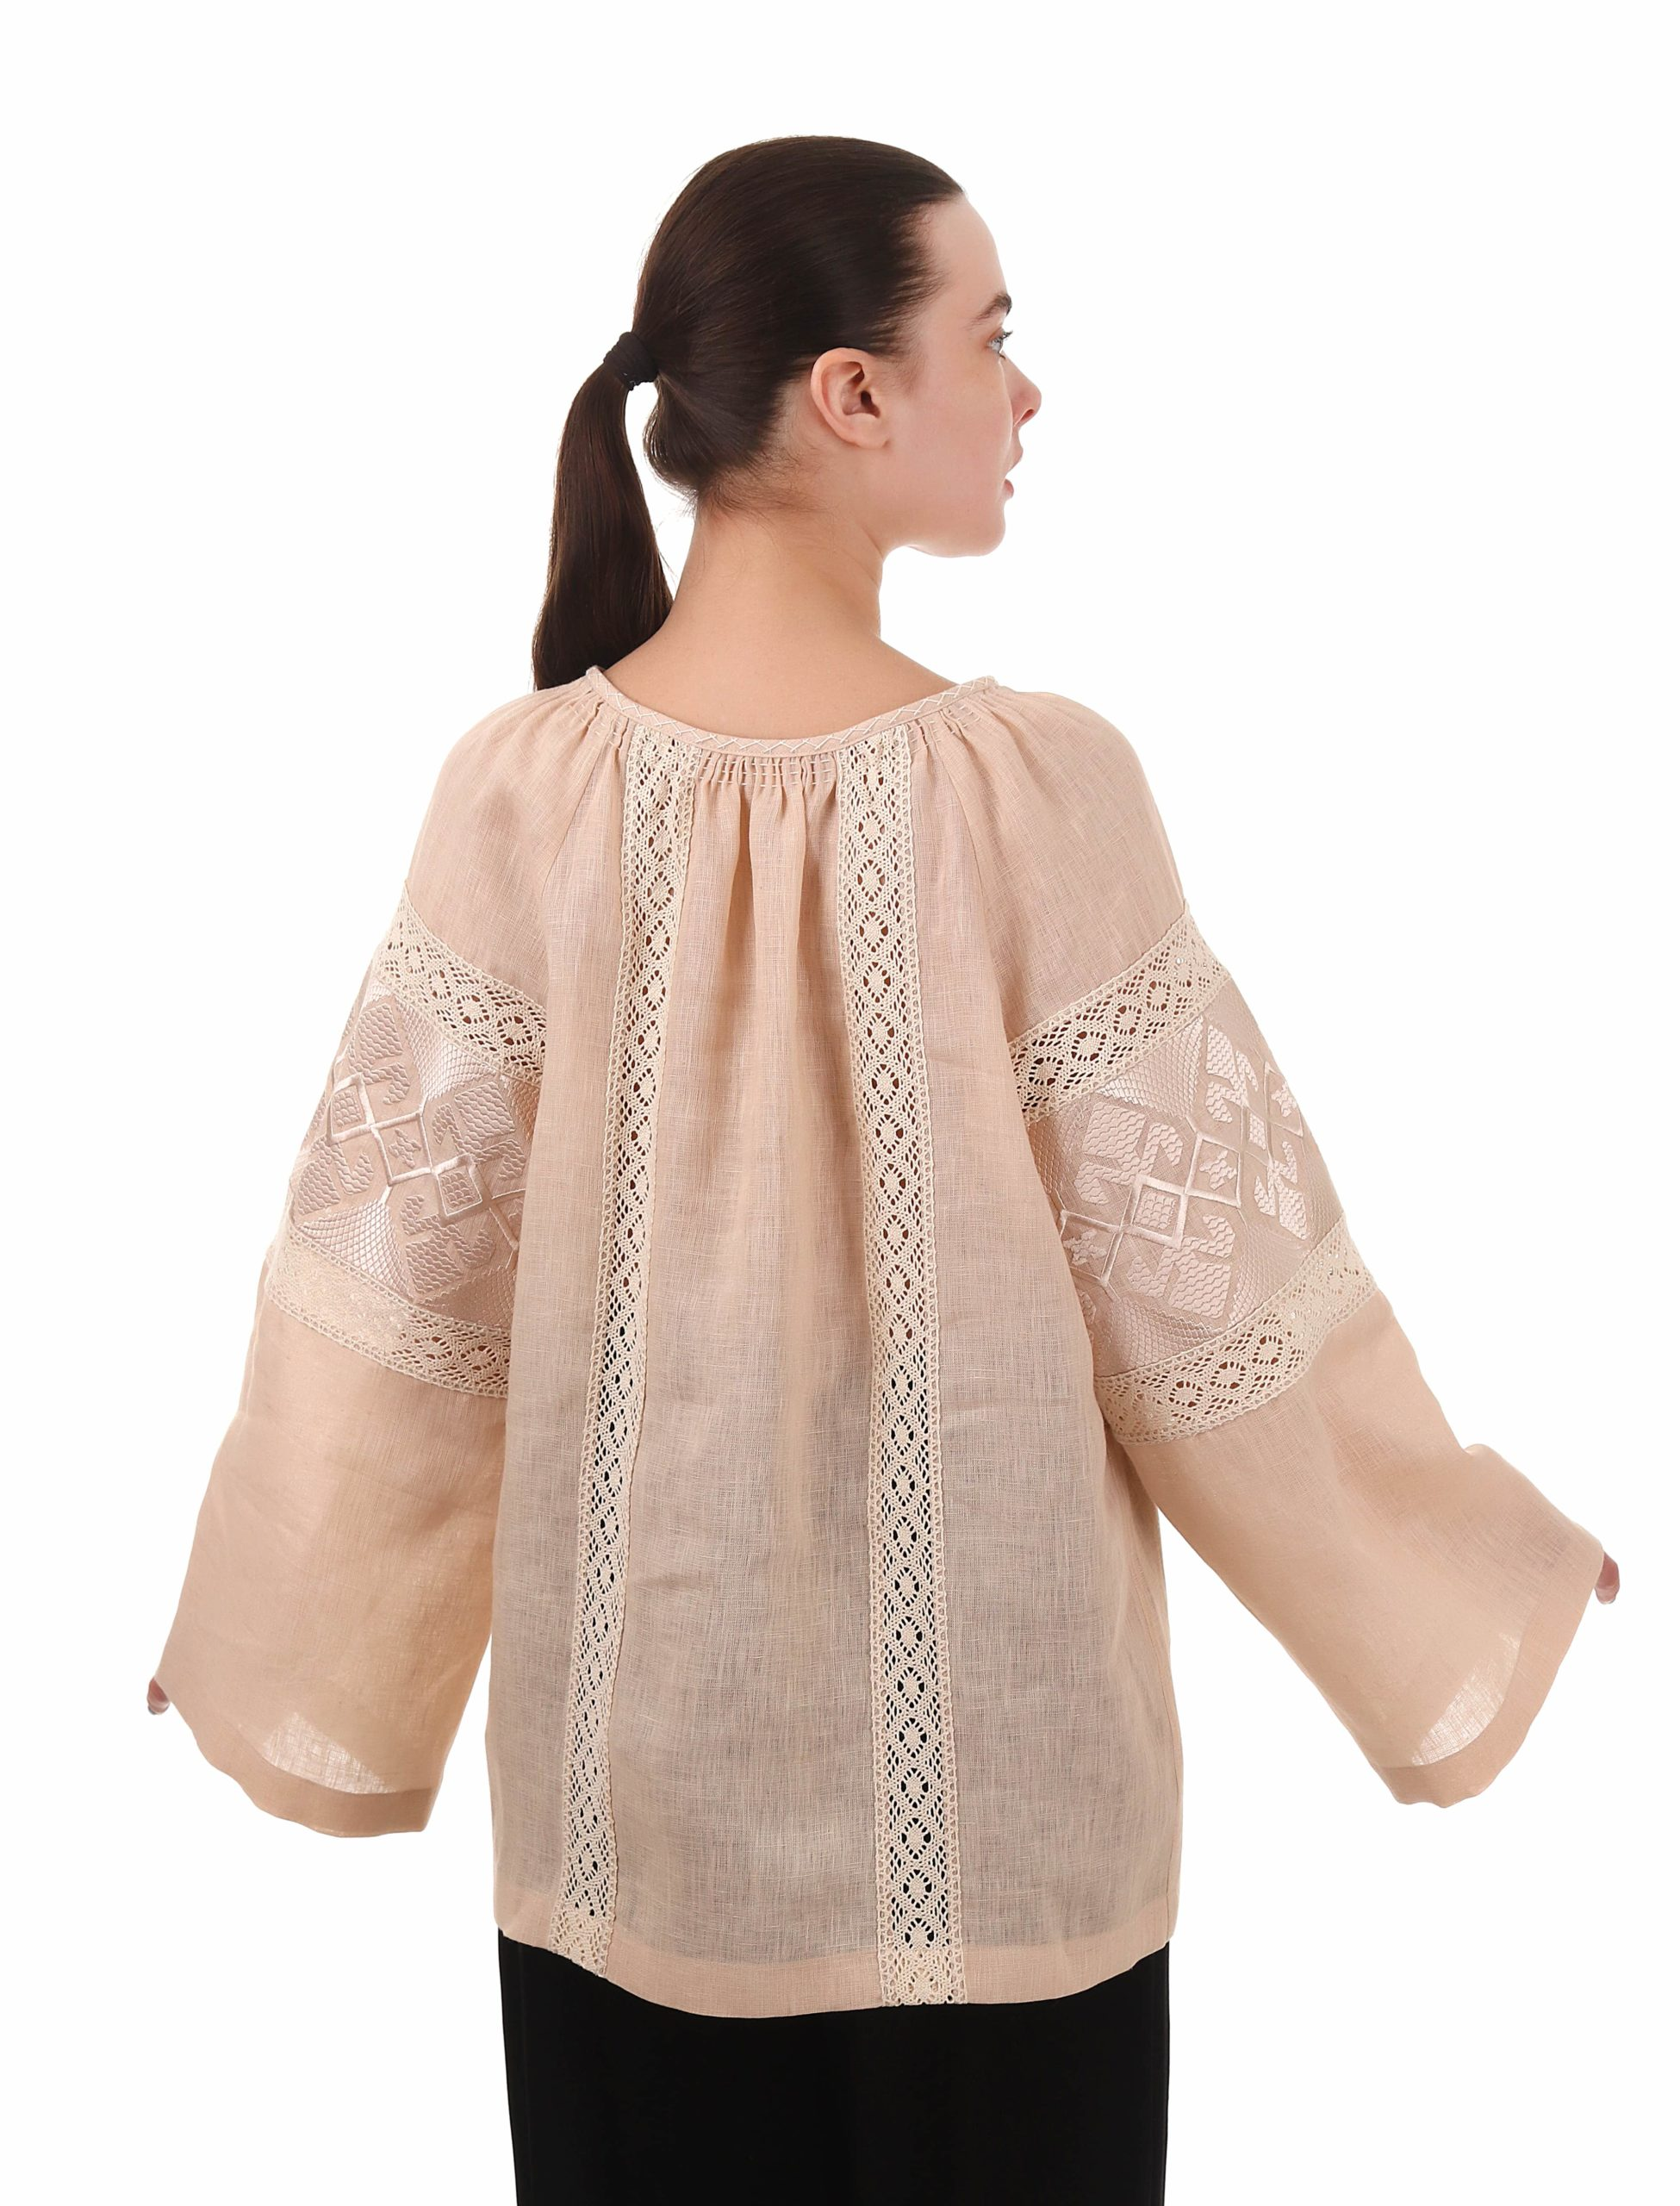 Powder blouse with embroidery